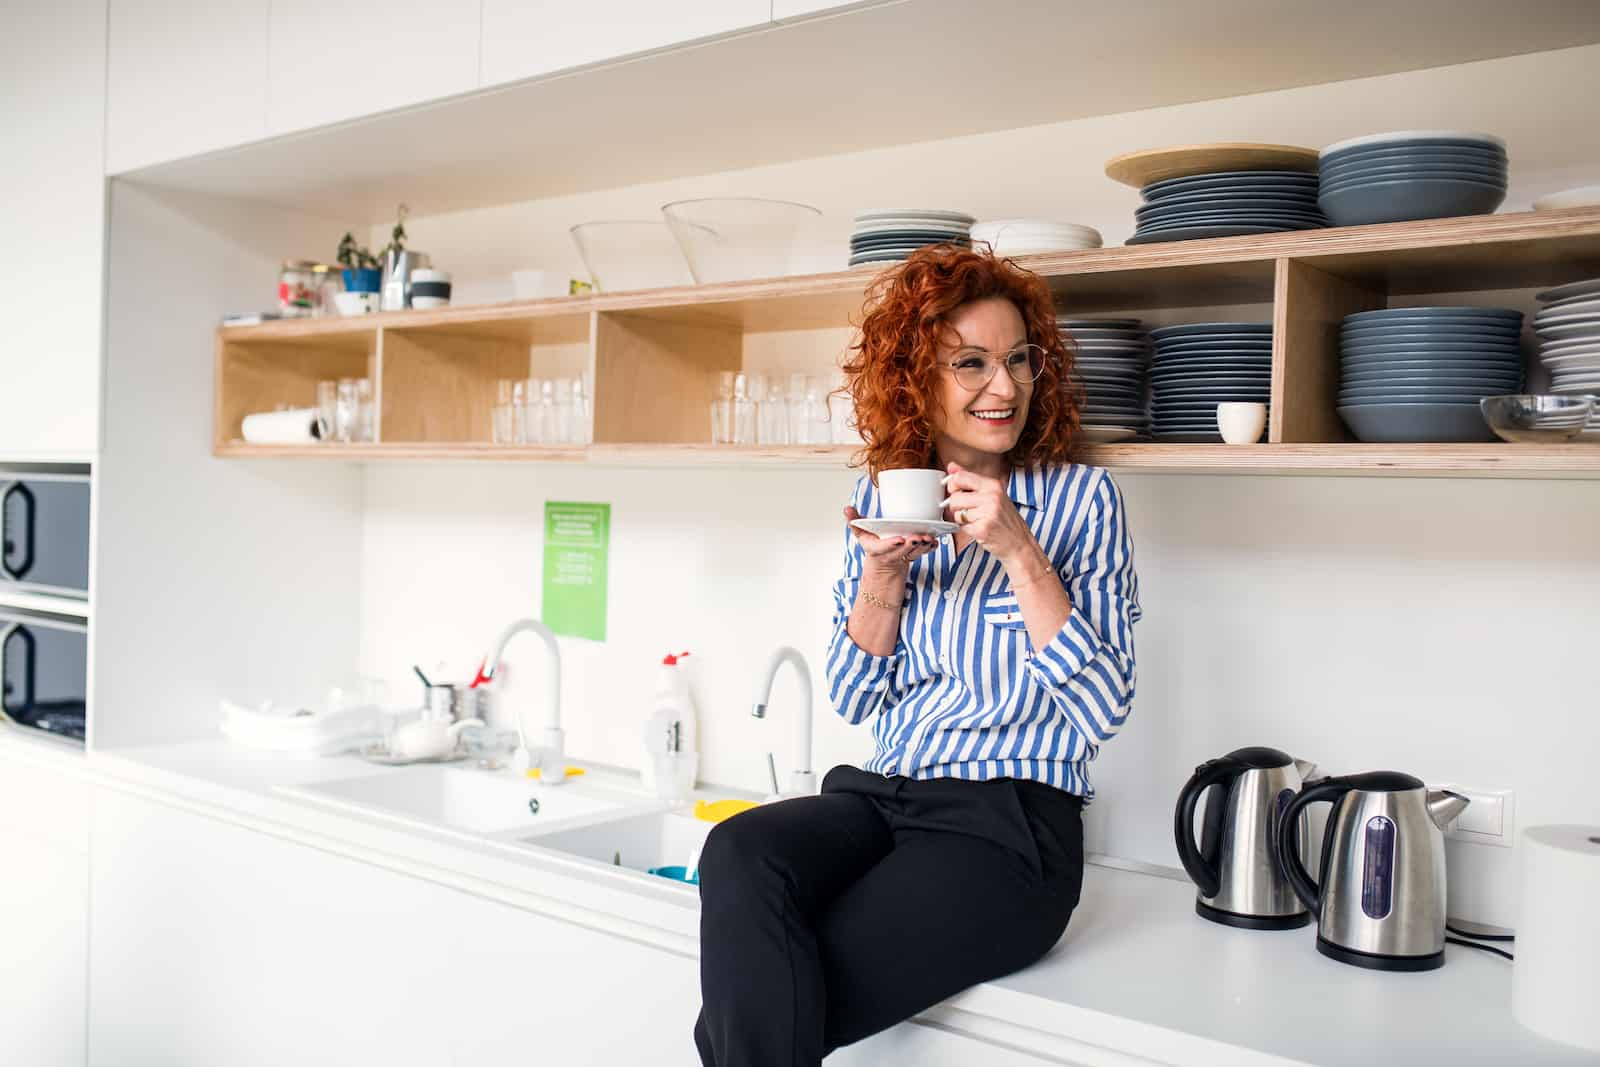 5 Tips to Make the Office Kitchen More Enjoyable!